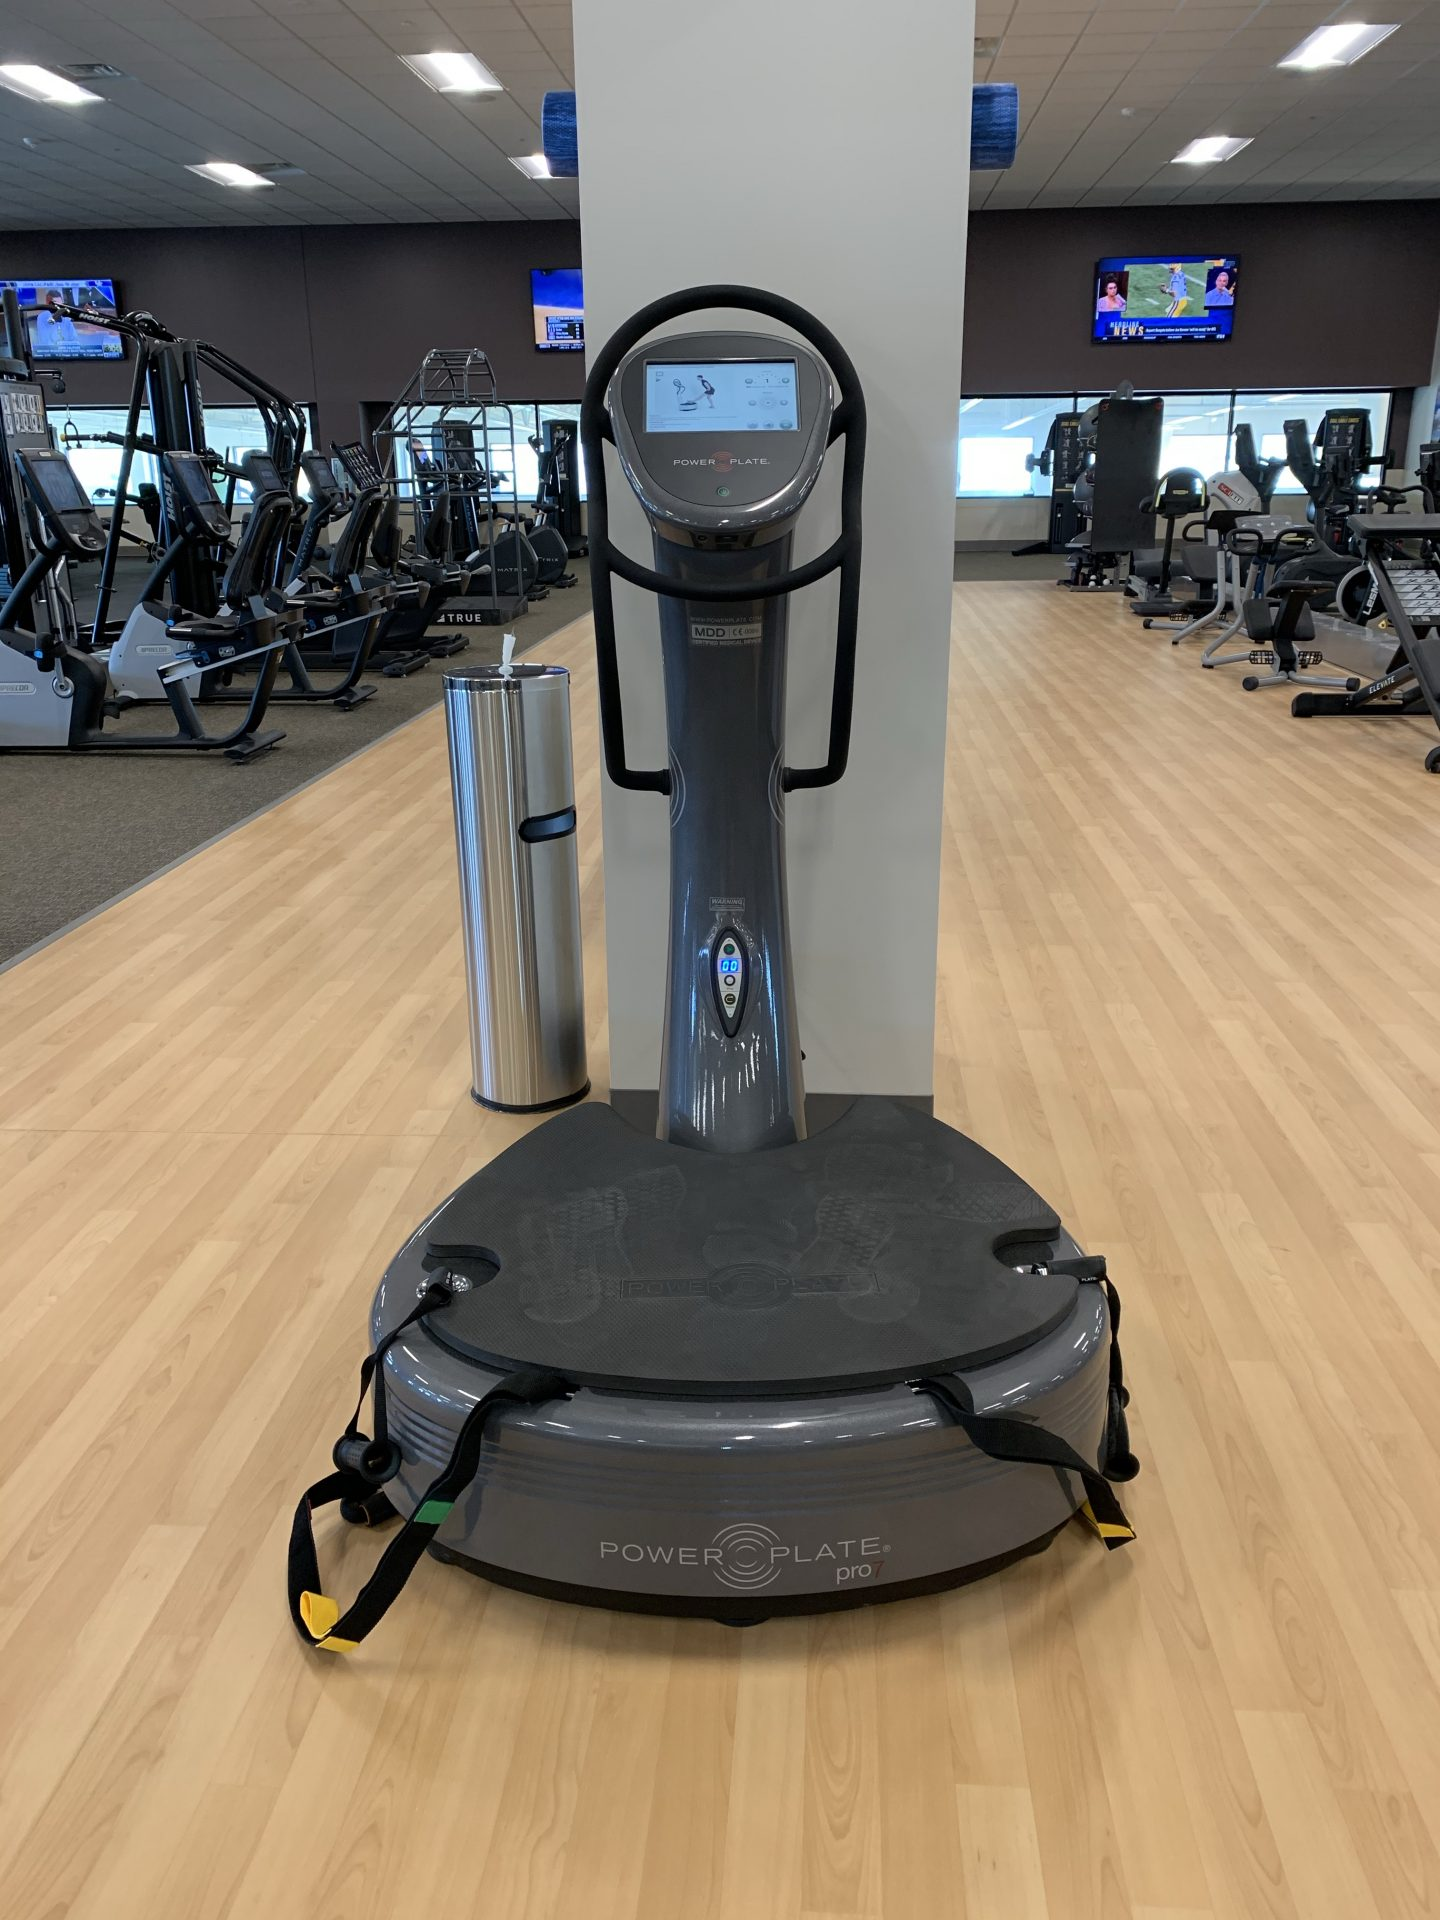 power plate machine - gyms in katy tx - villa sport cinco ranch